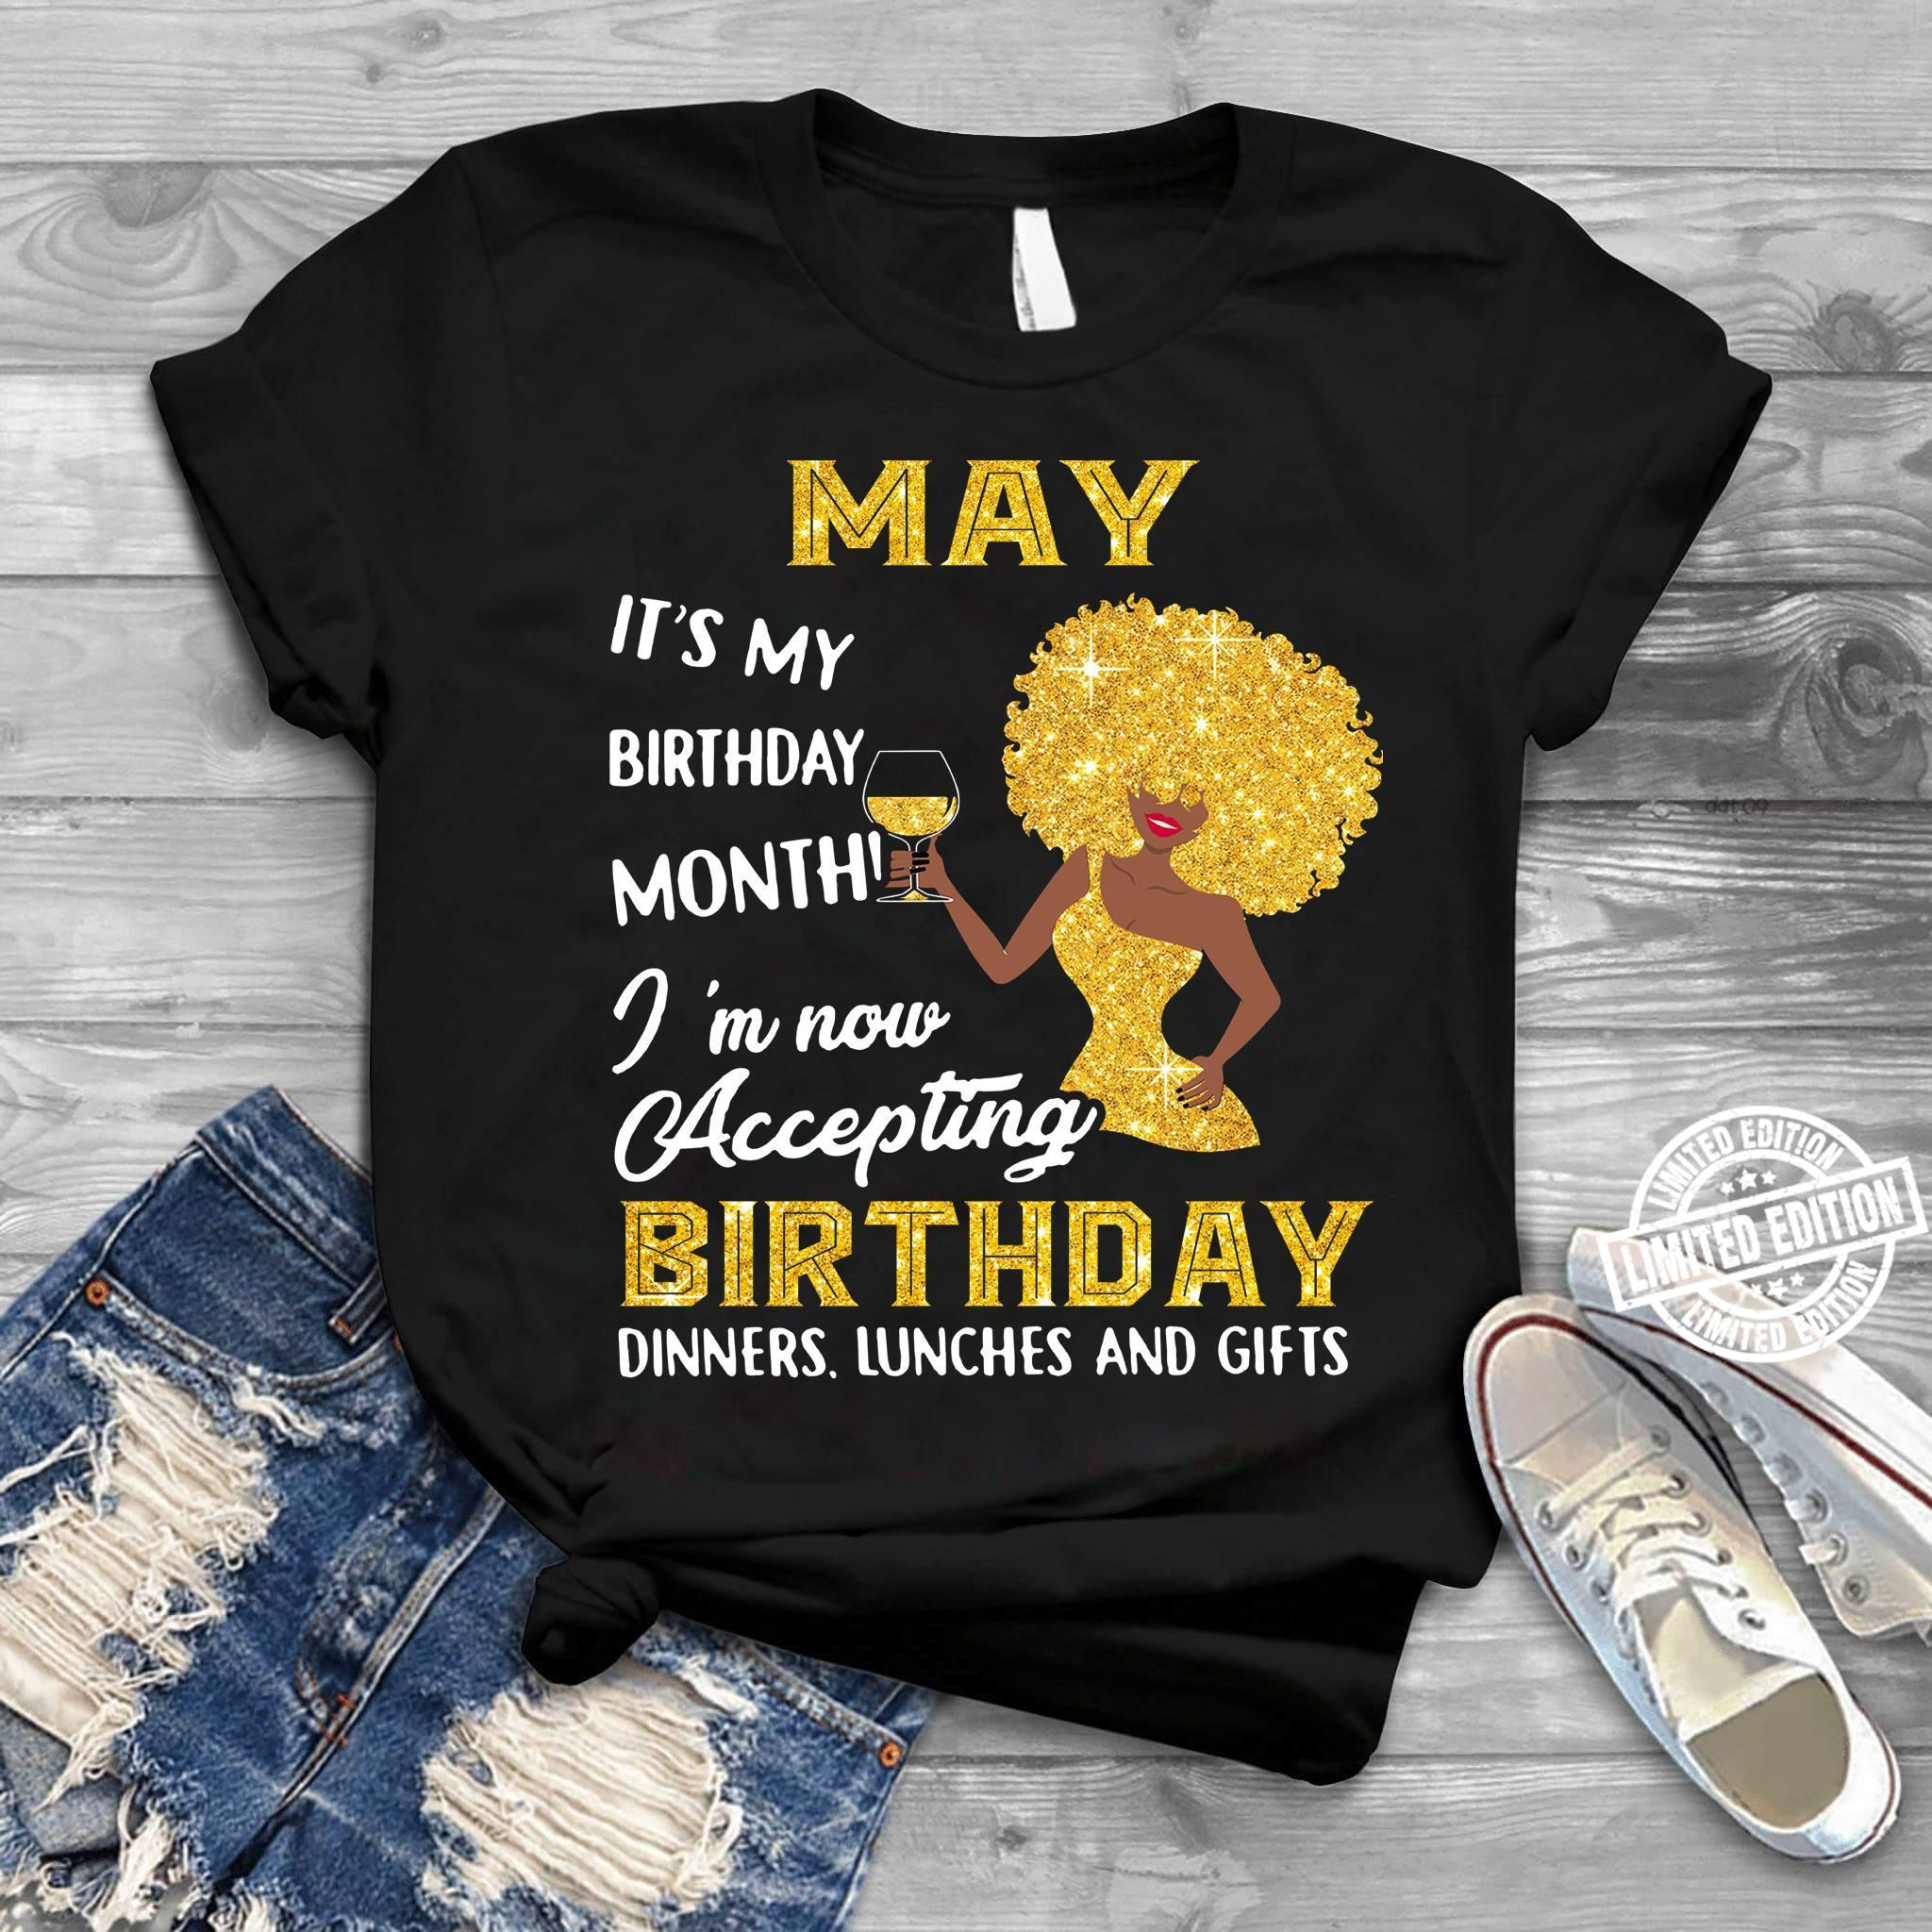 May it's my birthday month I'm now accepting birthday dinners lunches and gifts shirt